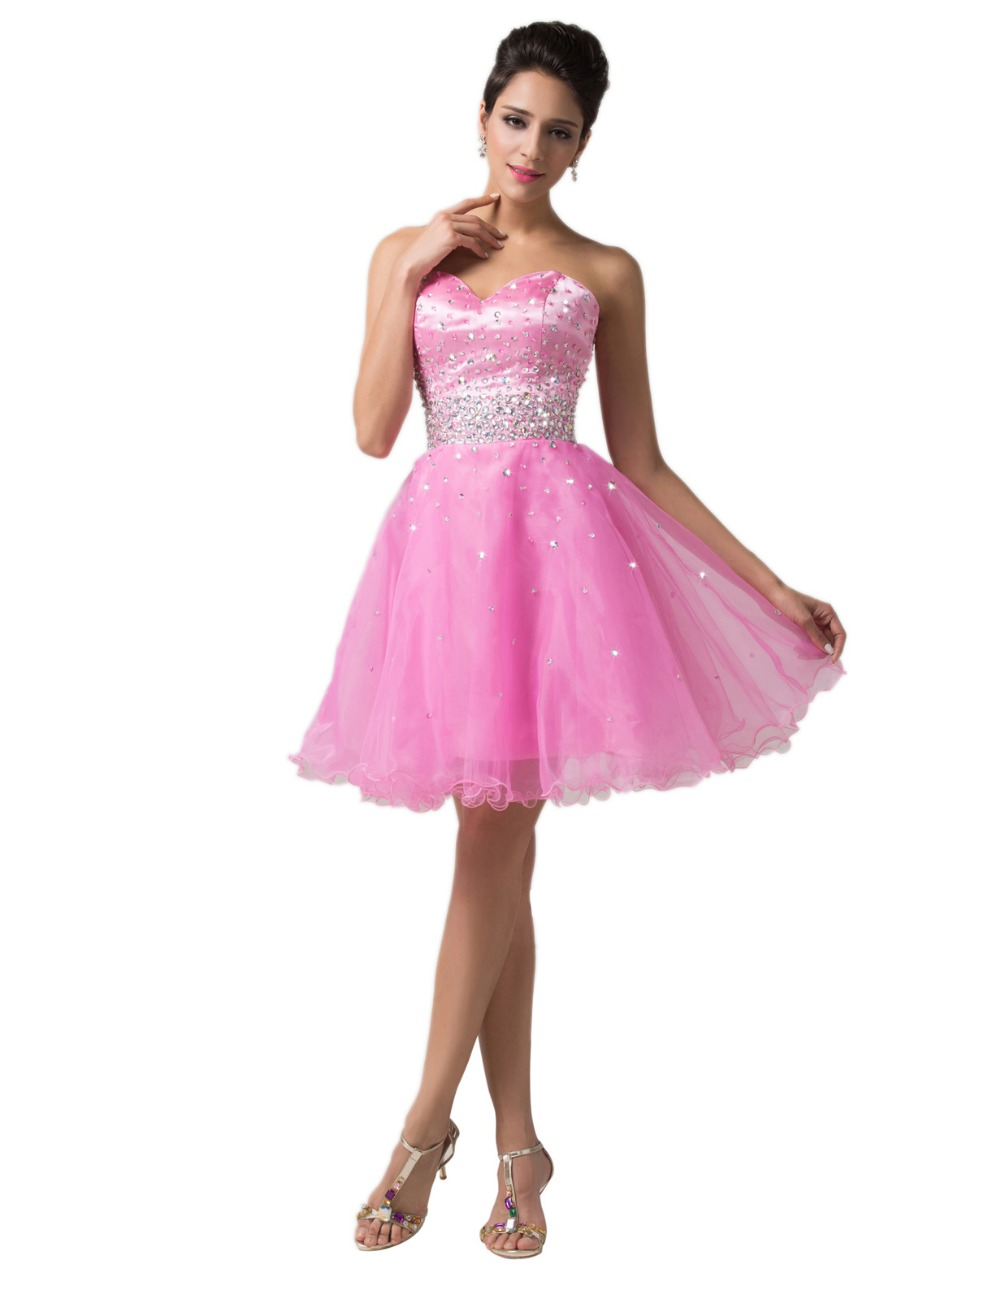 Cheap beaded knee length organza women cocktail dresses corset cheap beaded knee length organza women cocktail dresses corset homecoming dress 2017 short formal party ball prom gowns 6145 in homecoming dresses from ombrellifo Image collections